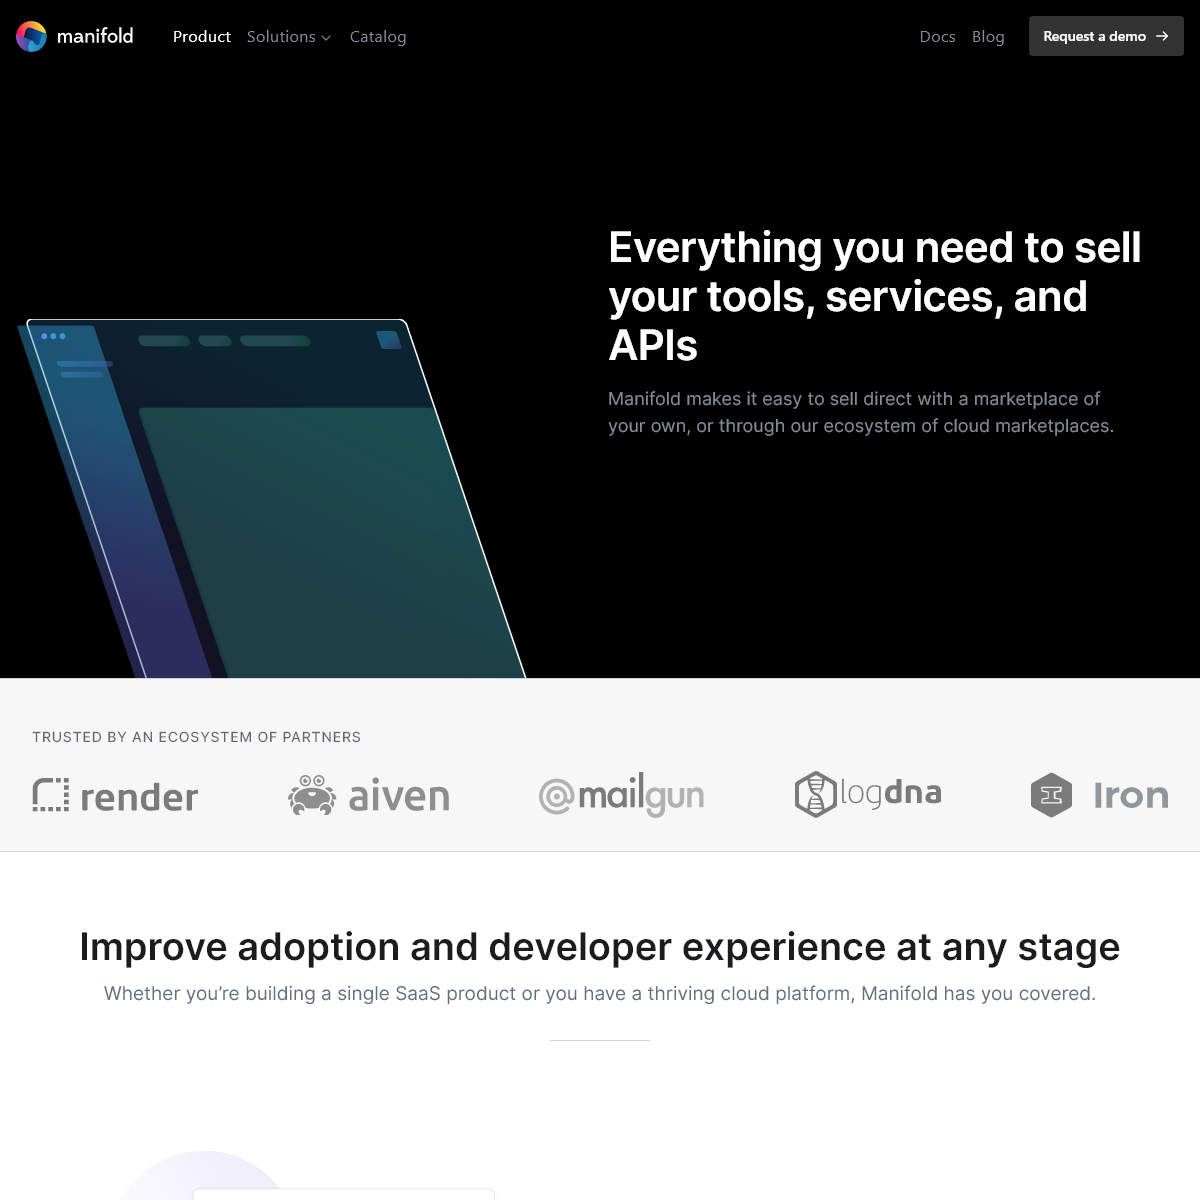 Manifold - Marketplace-as-a-Service for API-first products